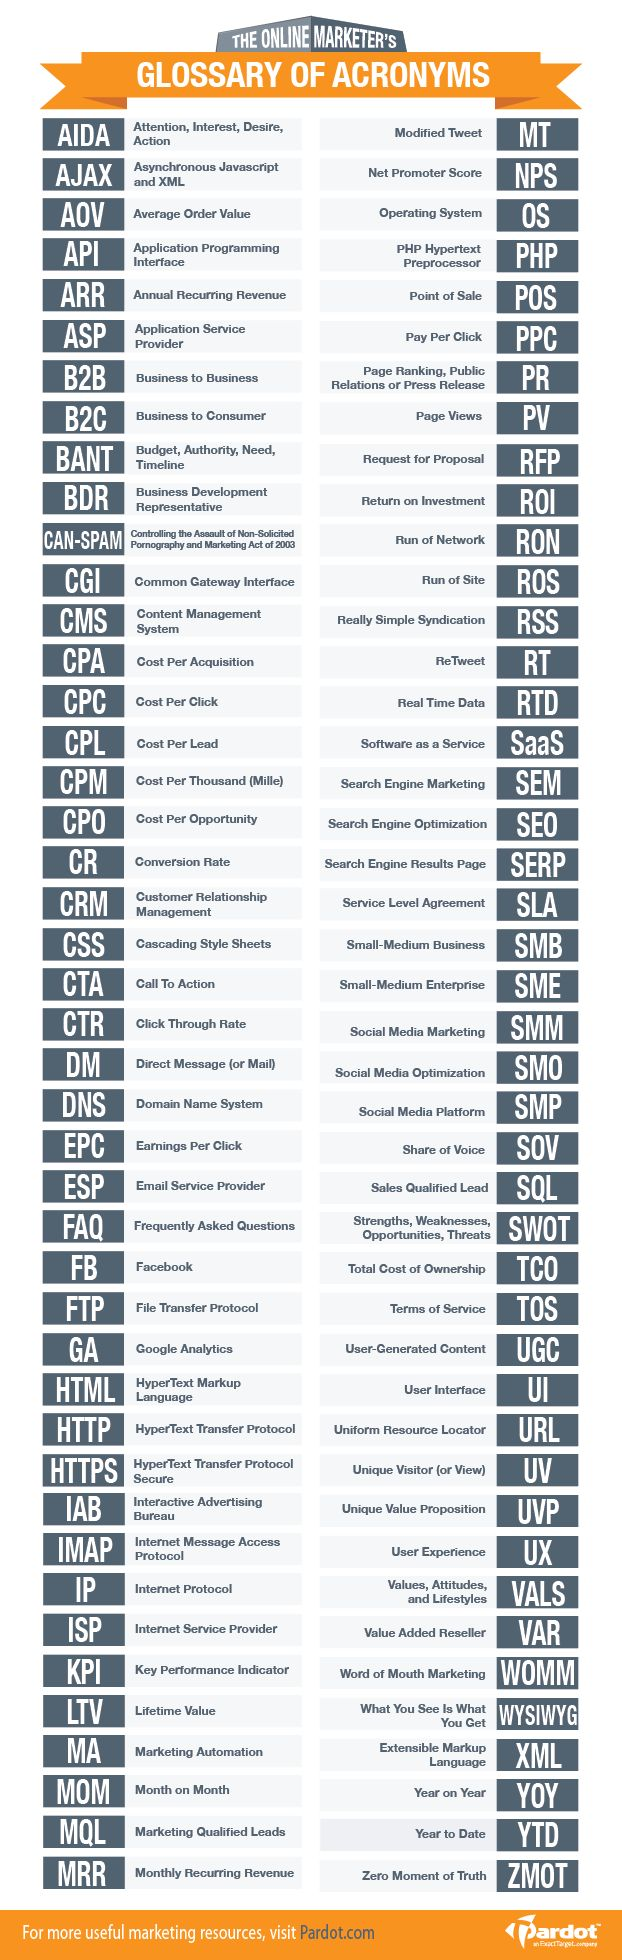 The Online Marketer's Glossary of Acronyms